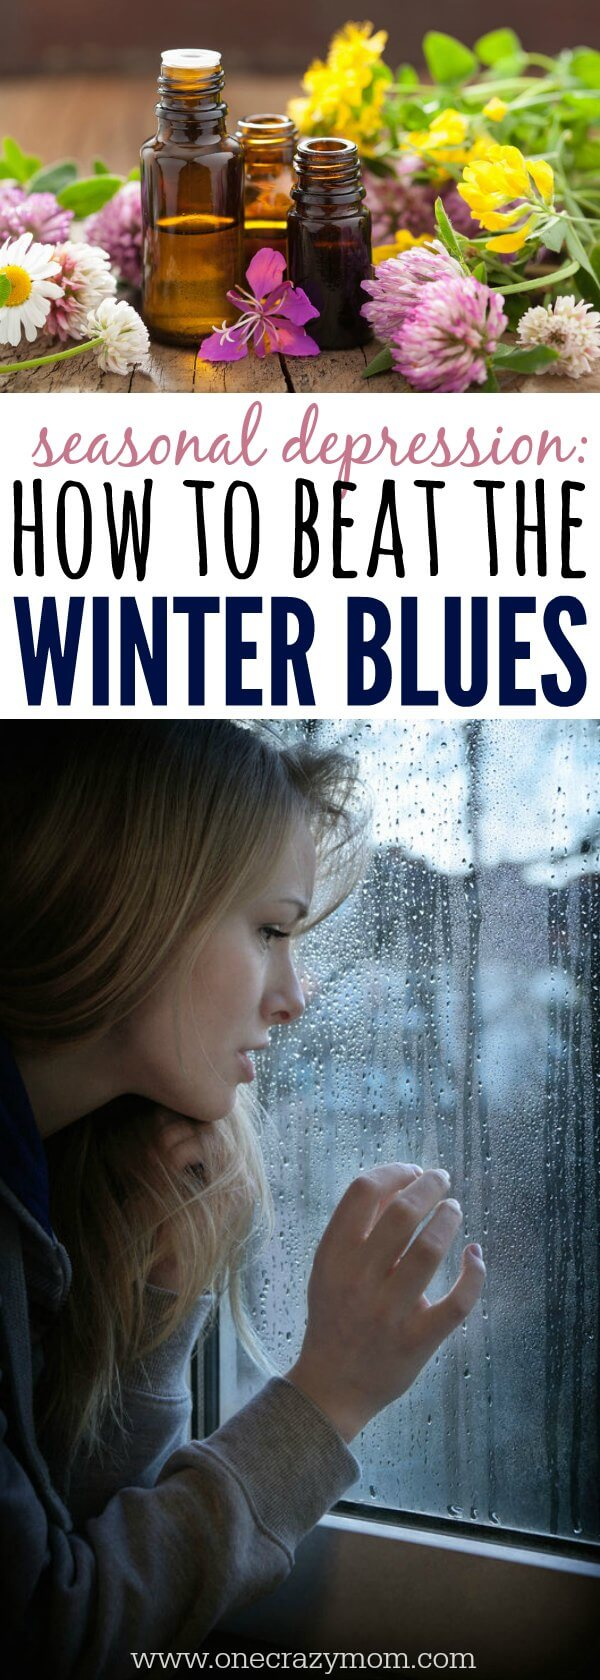 Learn how to beat seasonal depression. 7 tips to help get you through seasonal depression this winter. Use these suggestions during the rough months.